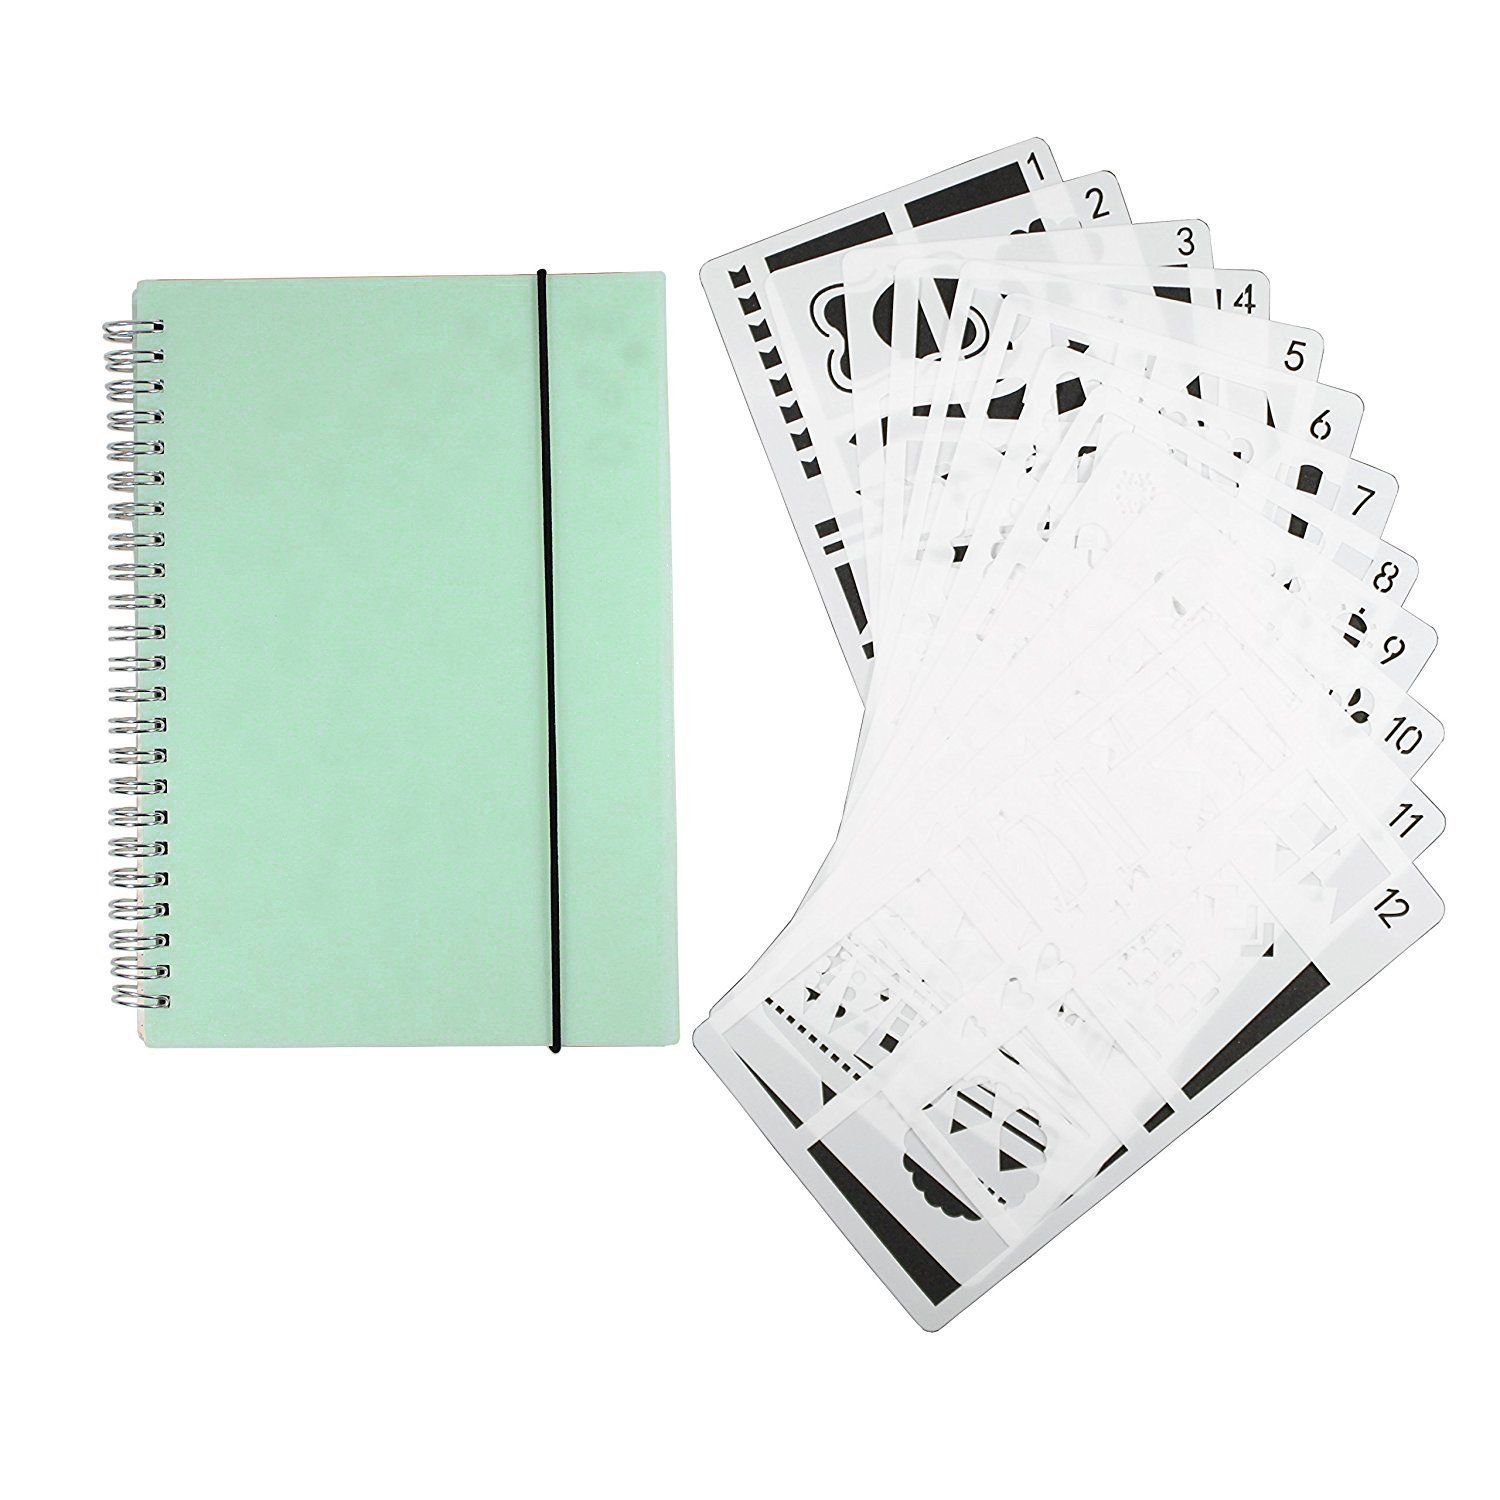 Asery 12Pcs Bullet Journal Stencil Set With Dot Grid Notebook For Journal/Notebook/Diary/Card/Scrapbooking Scrapbook Diy Drawing Template Stencil 4336890648